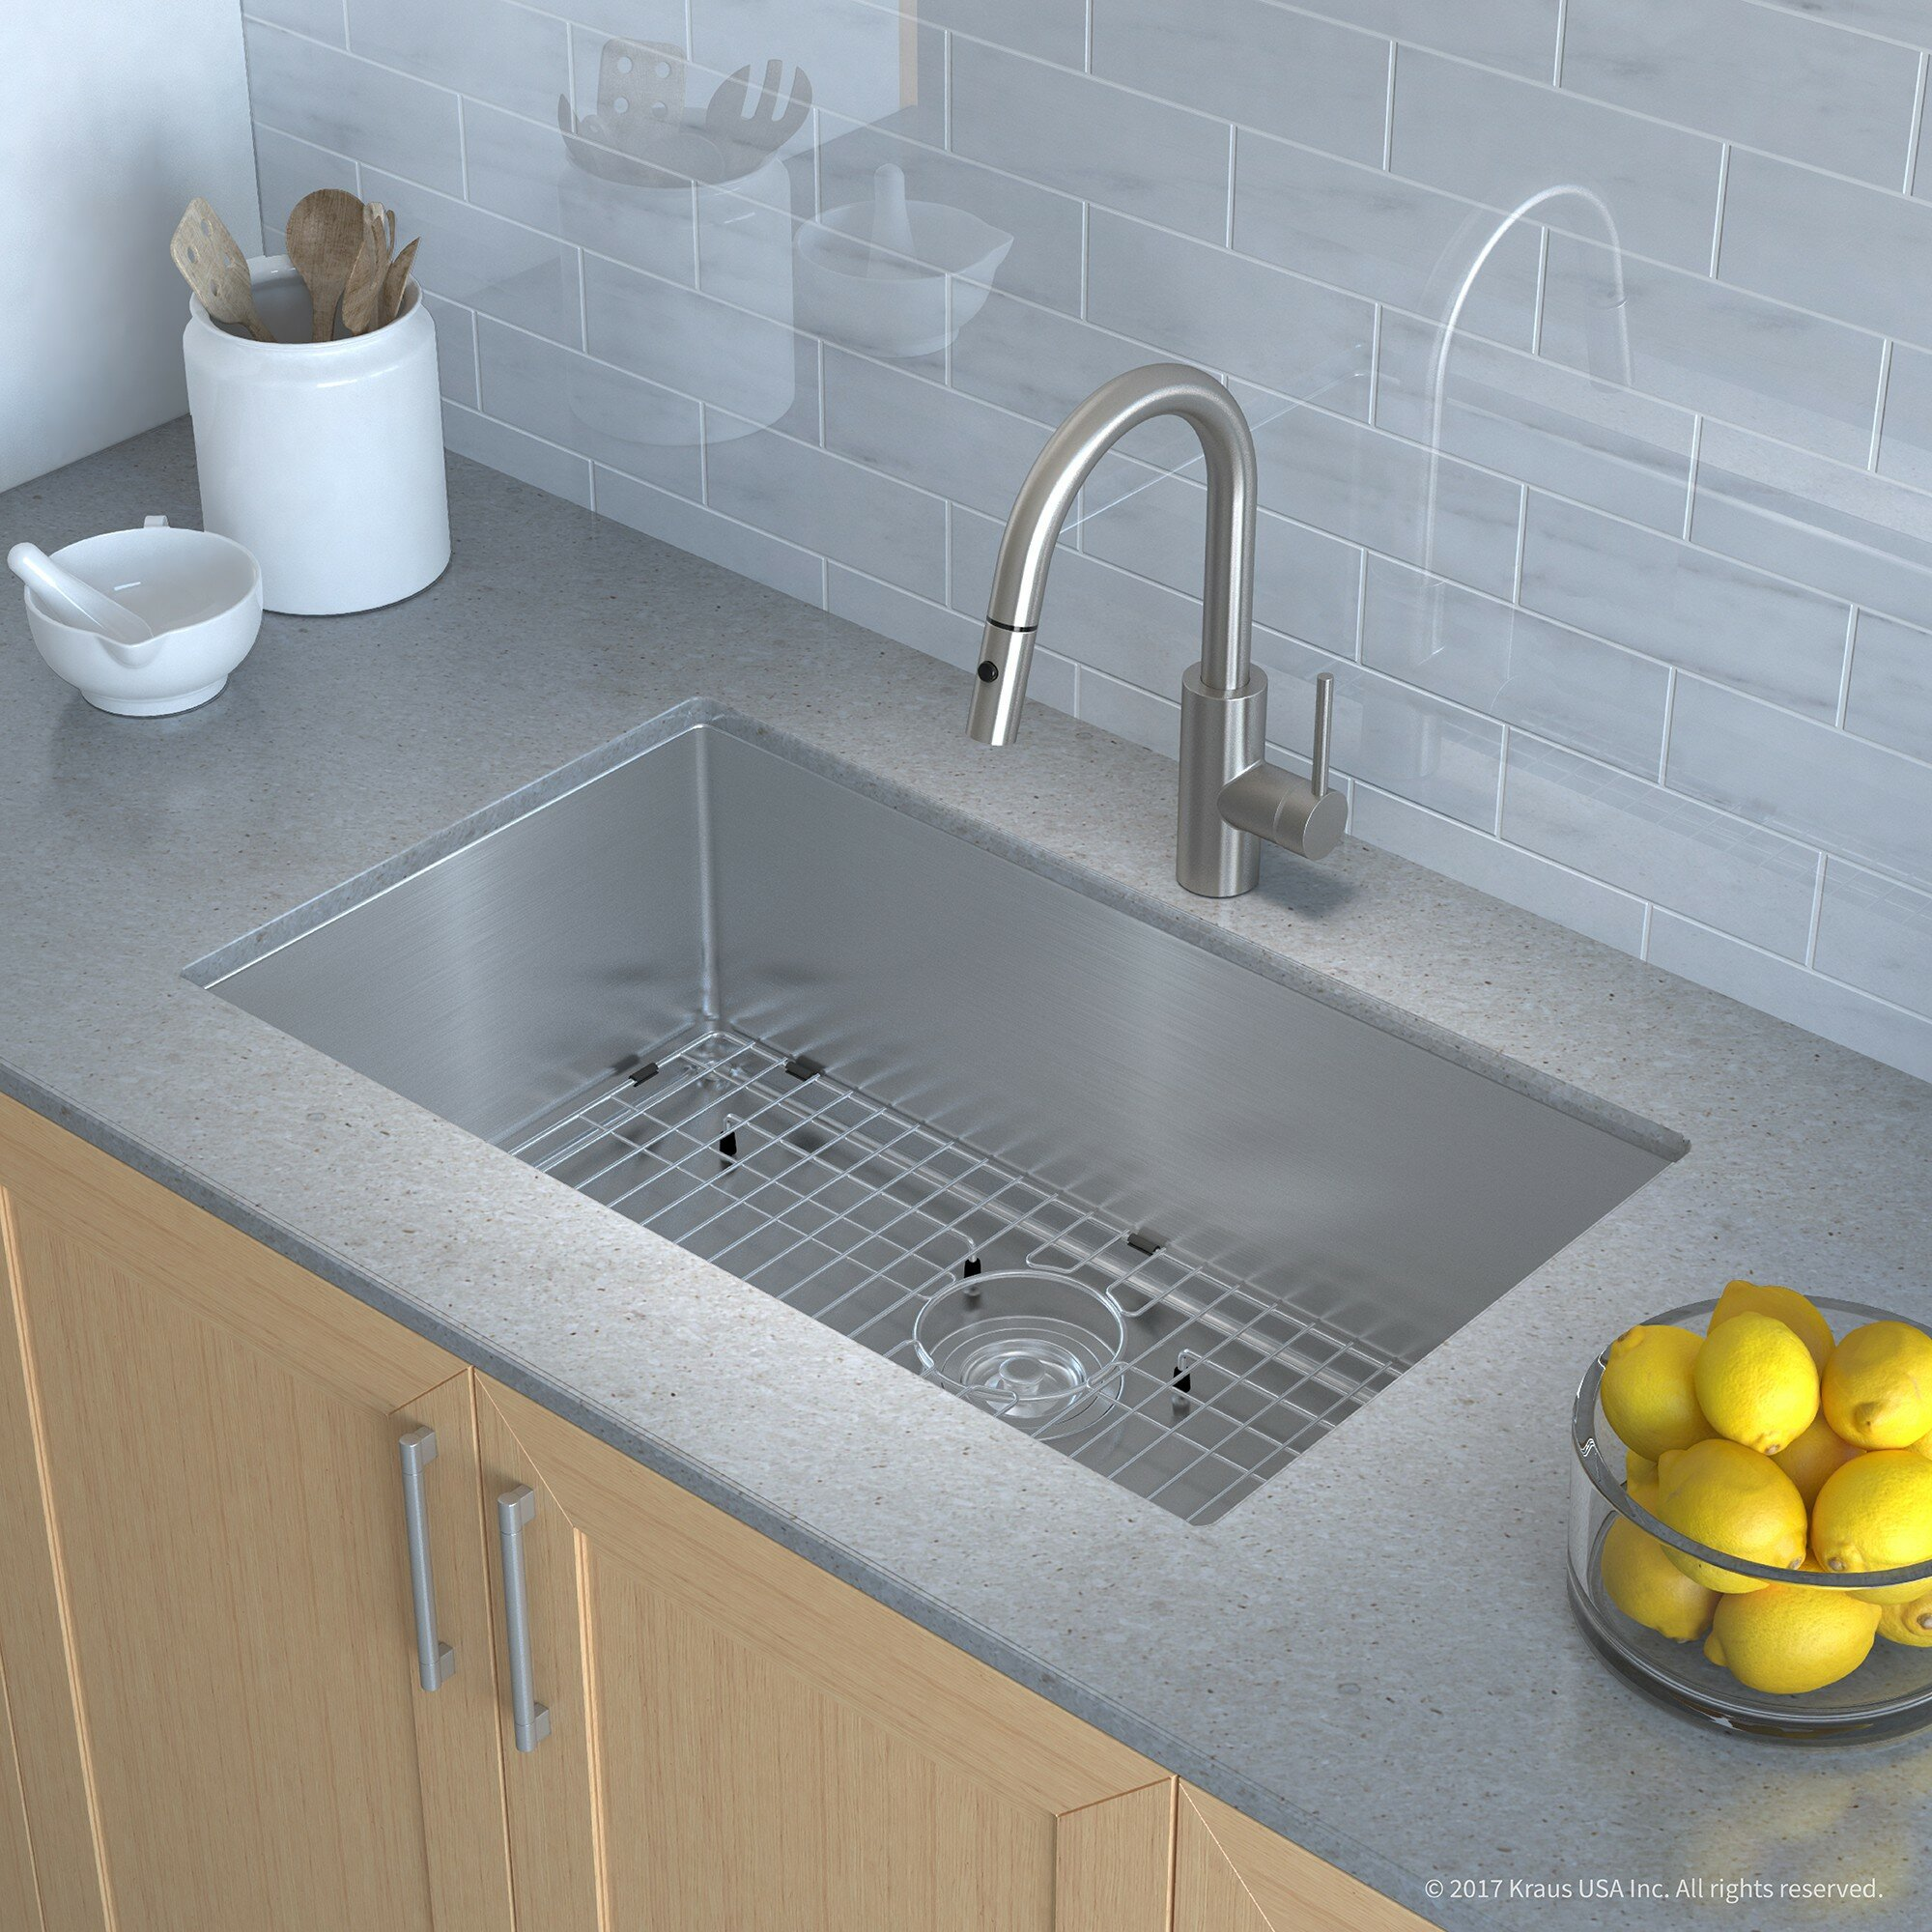 "Kraus Handmade Series 30"" x 18"" Undermount Kitchen Sink with Faucet ..."